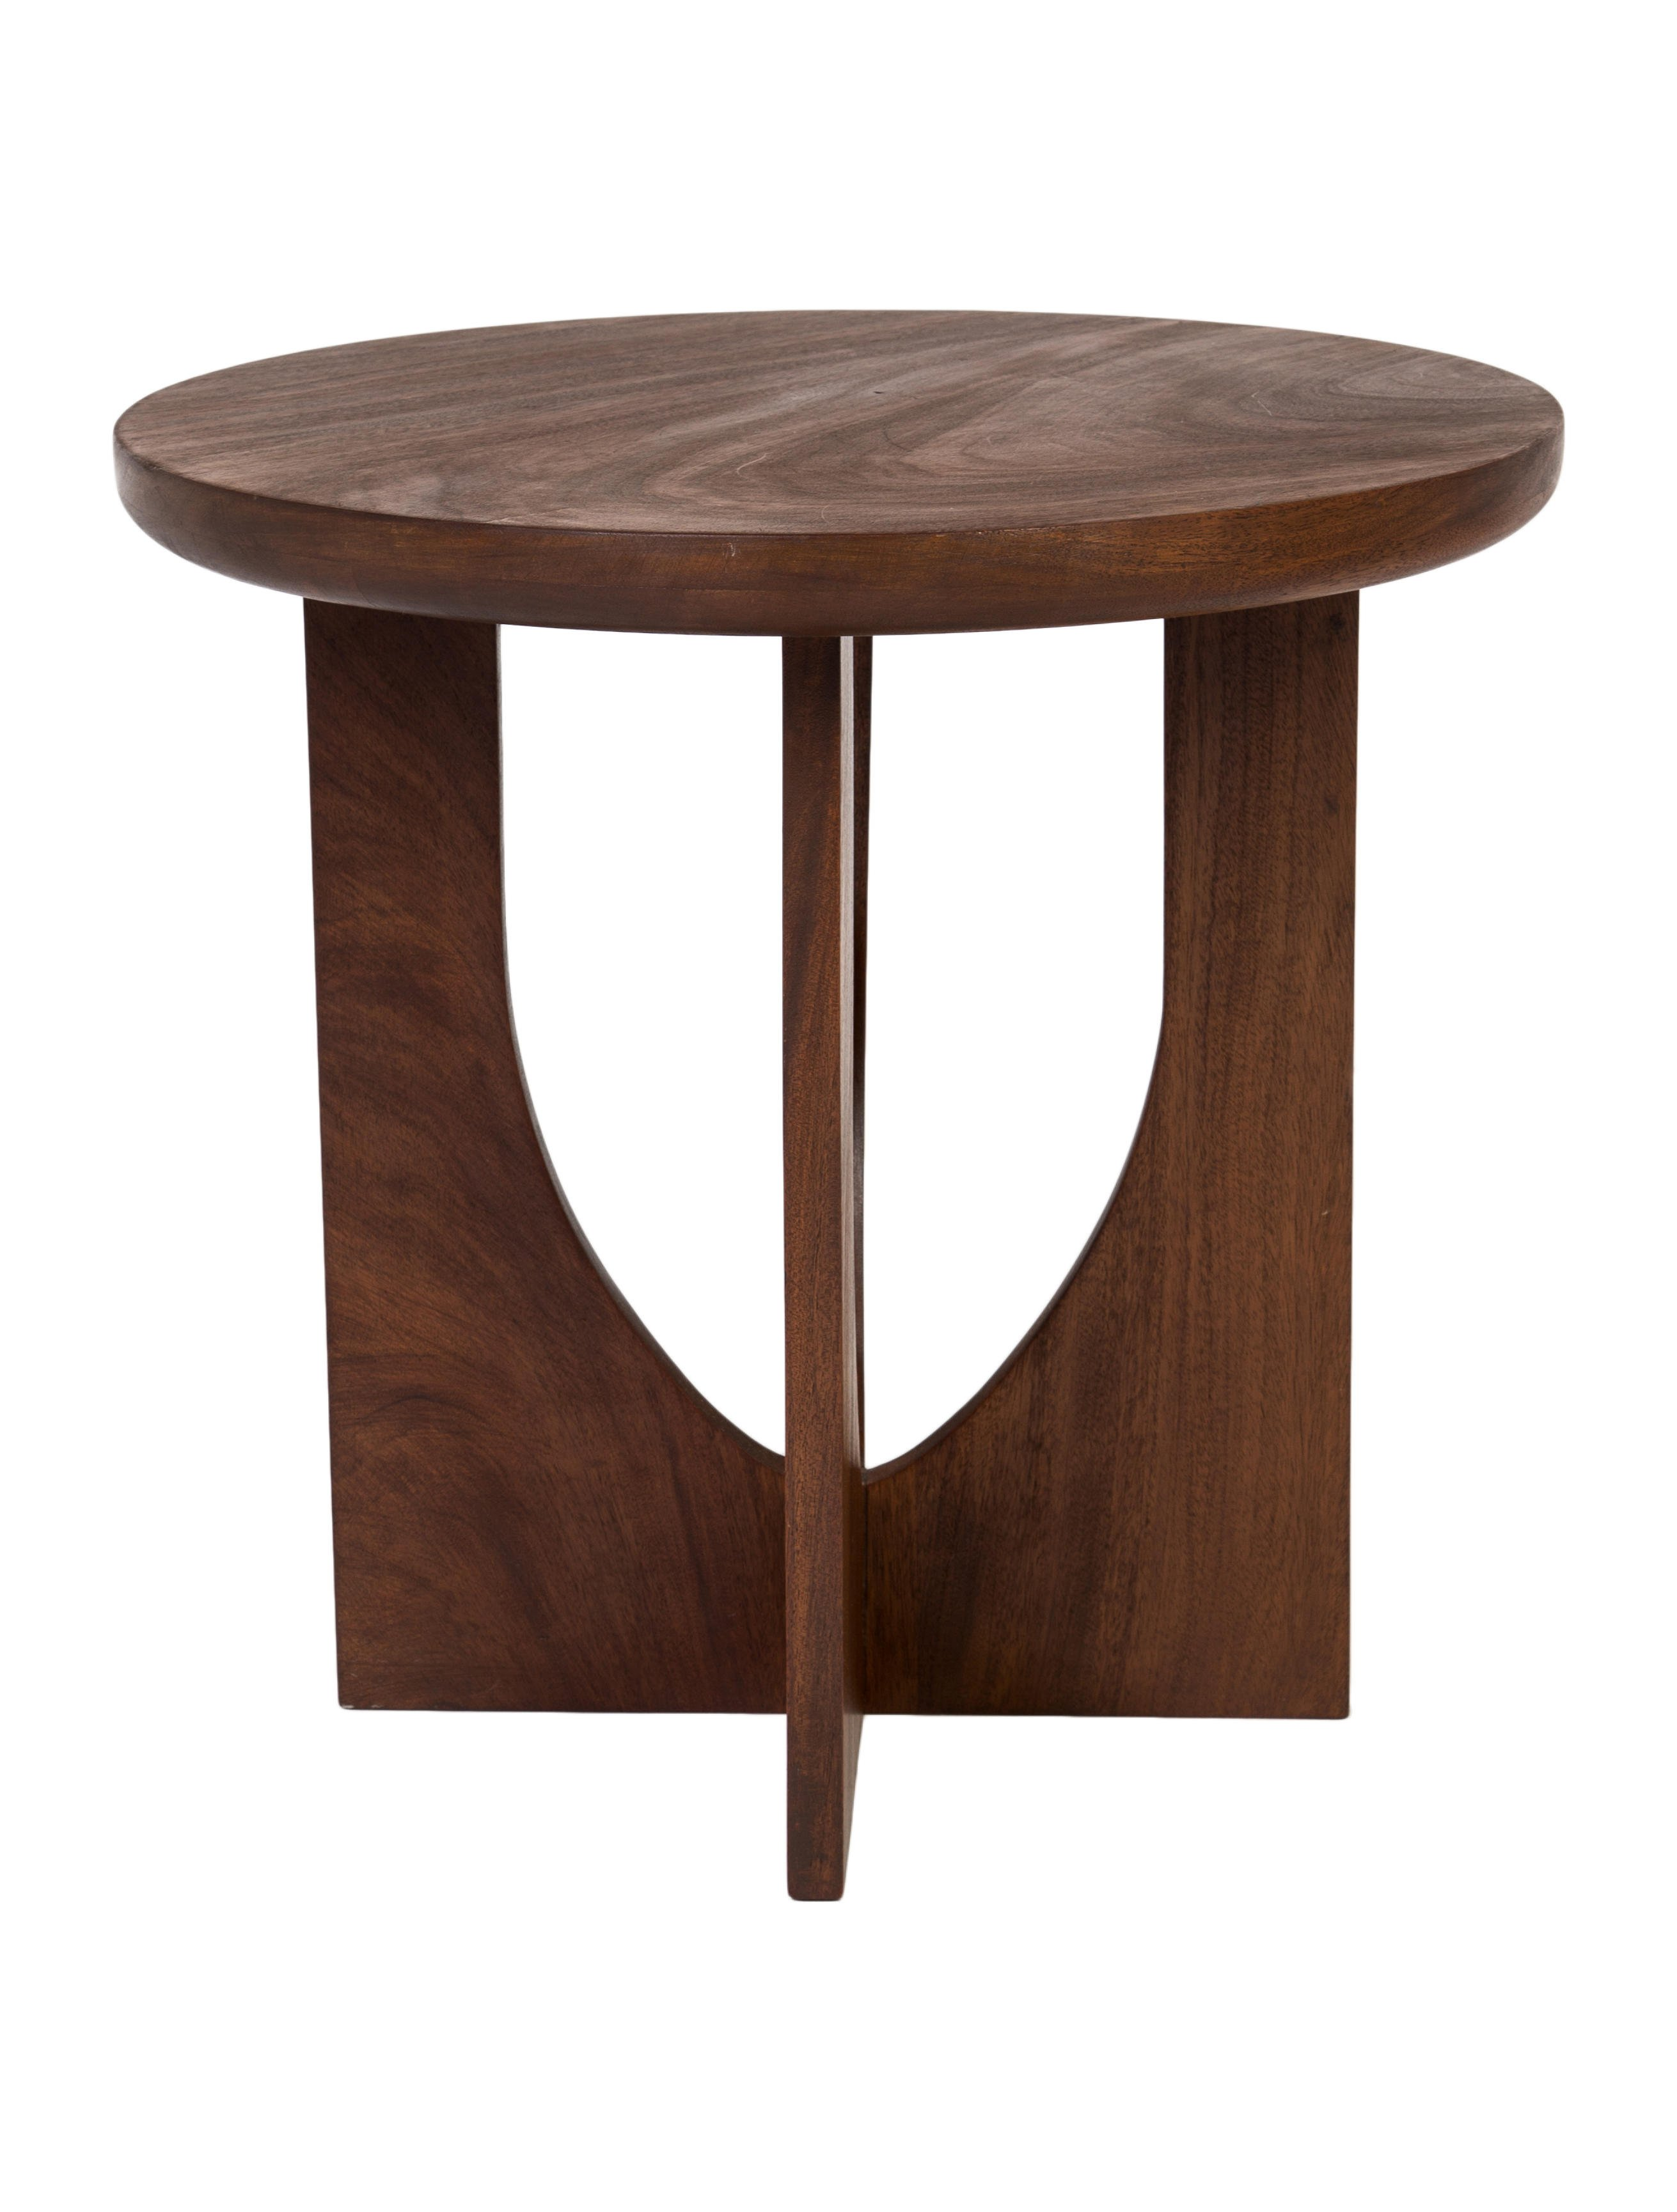 mid century modern end tables furniture ceramic accent table mosaic seater patio set shaped vita silvia round wood and iron coffee battery operated lights for living room green